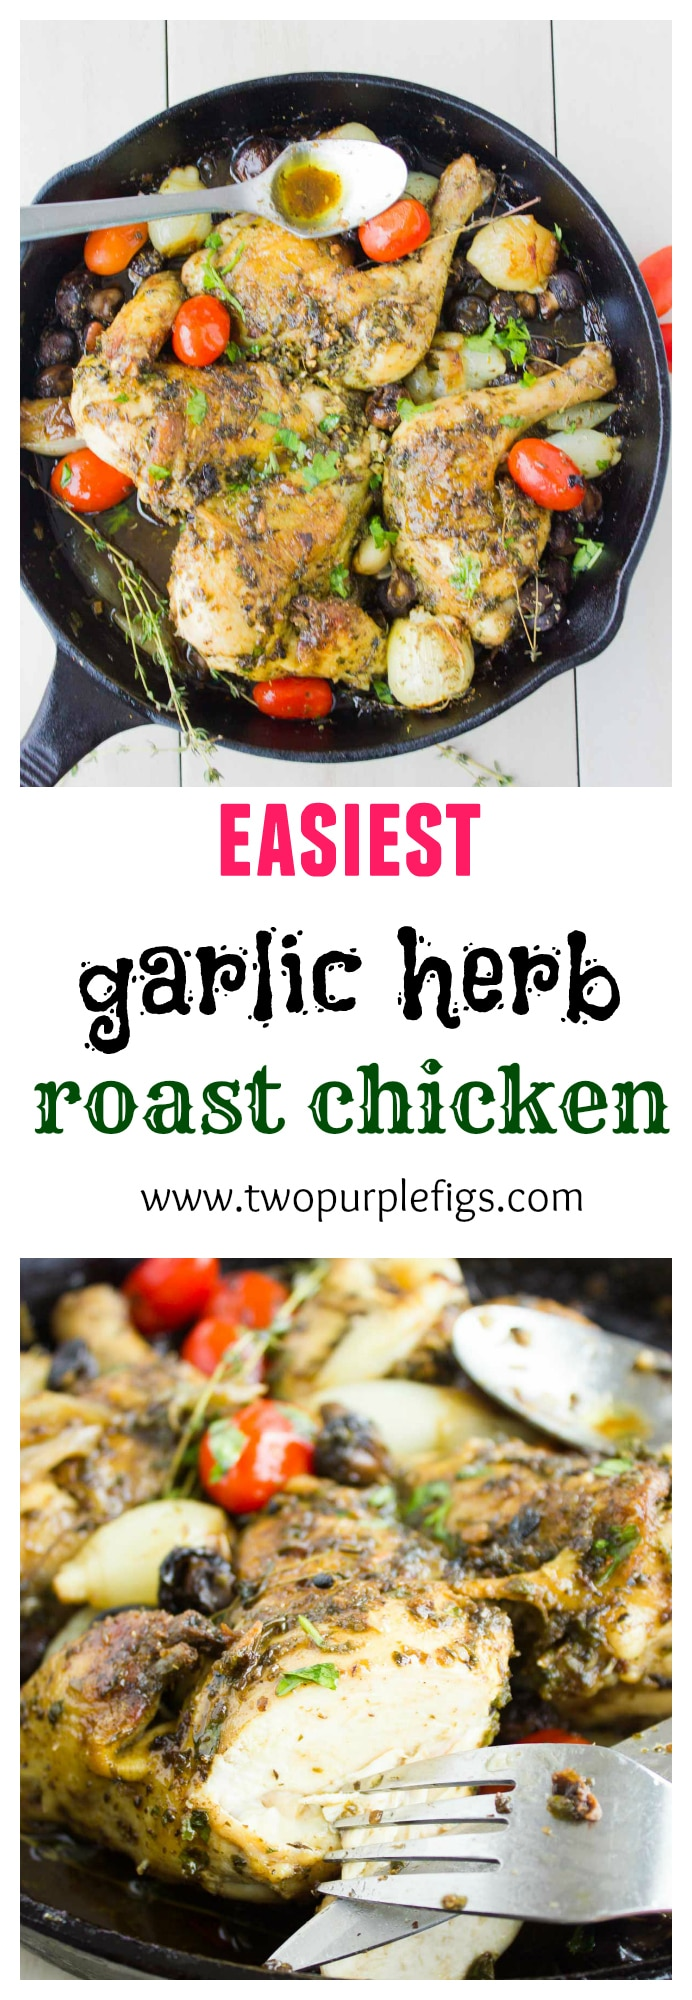 Easy Garlic Herb Roast Chicken   this recipe is the most straightforward, foolproof way to roast any whole chicken. Infused with herbs and spices and roasted with onions, garlic, mushrooms and herbs, Roast Chicken will be perfectly juicy and tender in just 35 minutes. #chicken, #roast, #easy, #skillet, #keto, #lowcarb, #juicy, #quick, #dinner